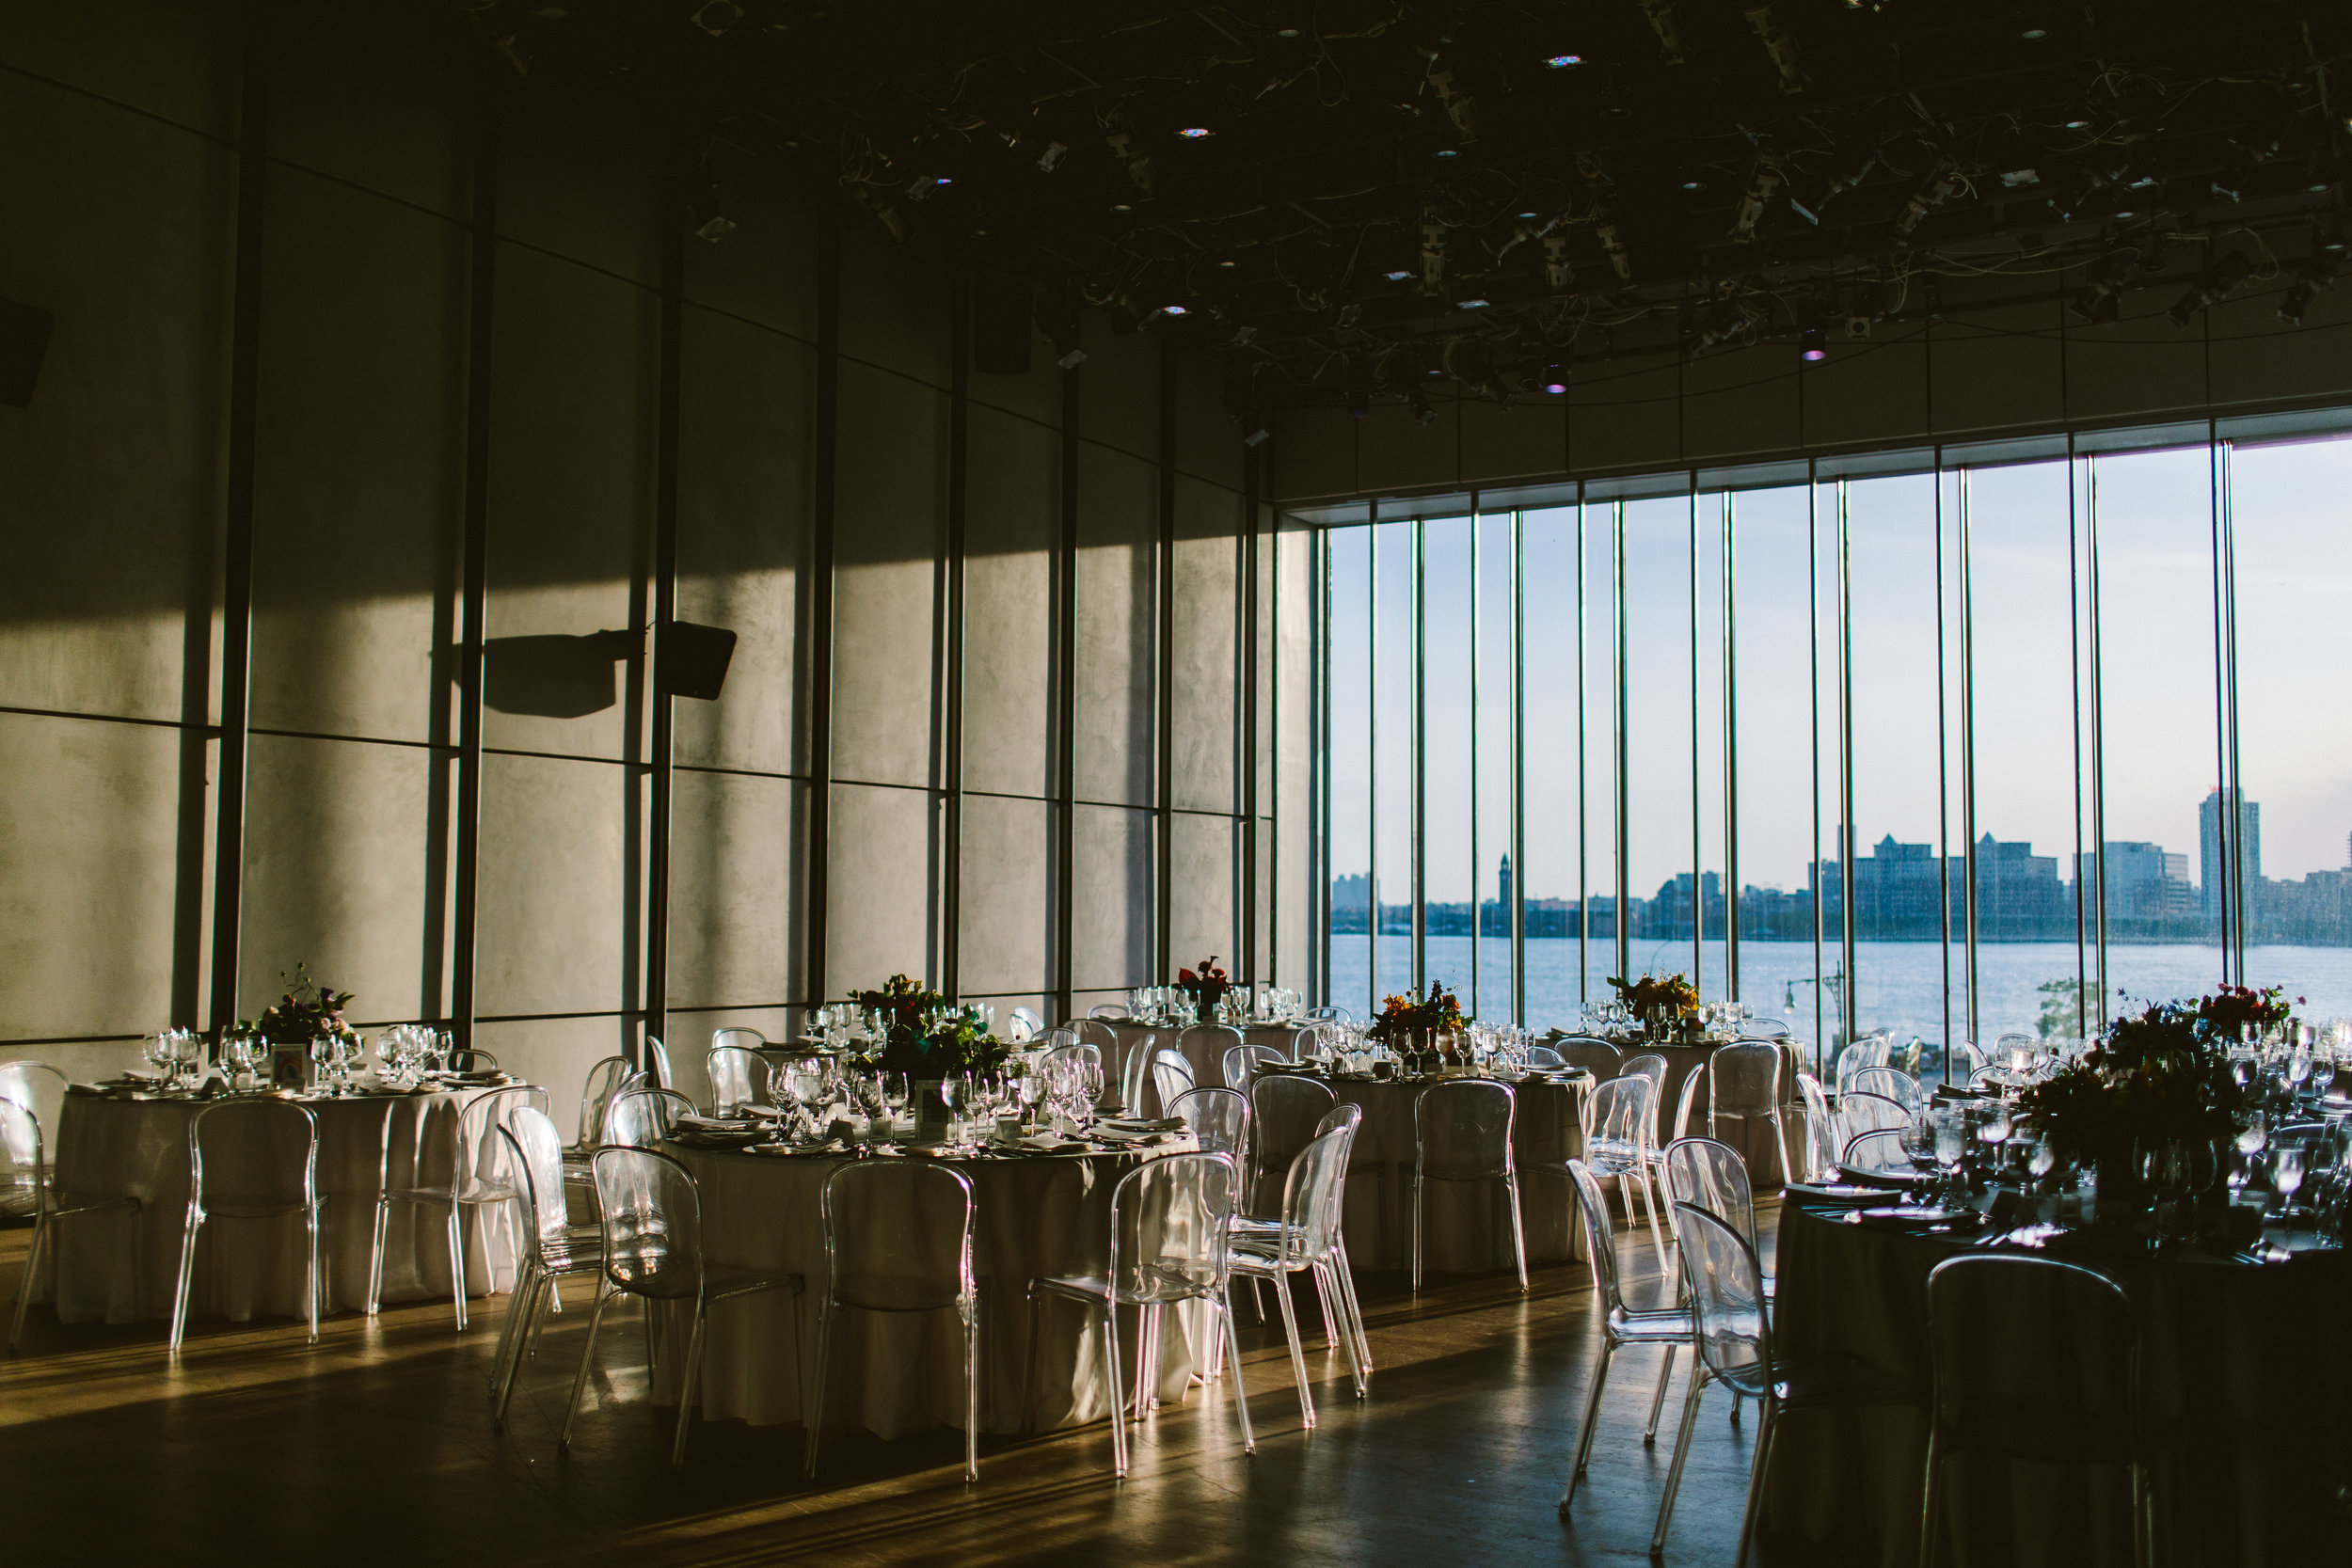 whitney-museum-rehearsal-dinner-jove-meyer-events-030.jpg